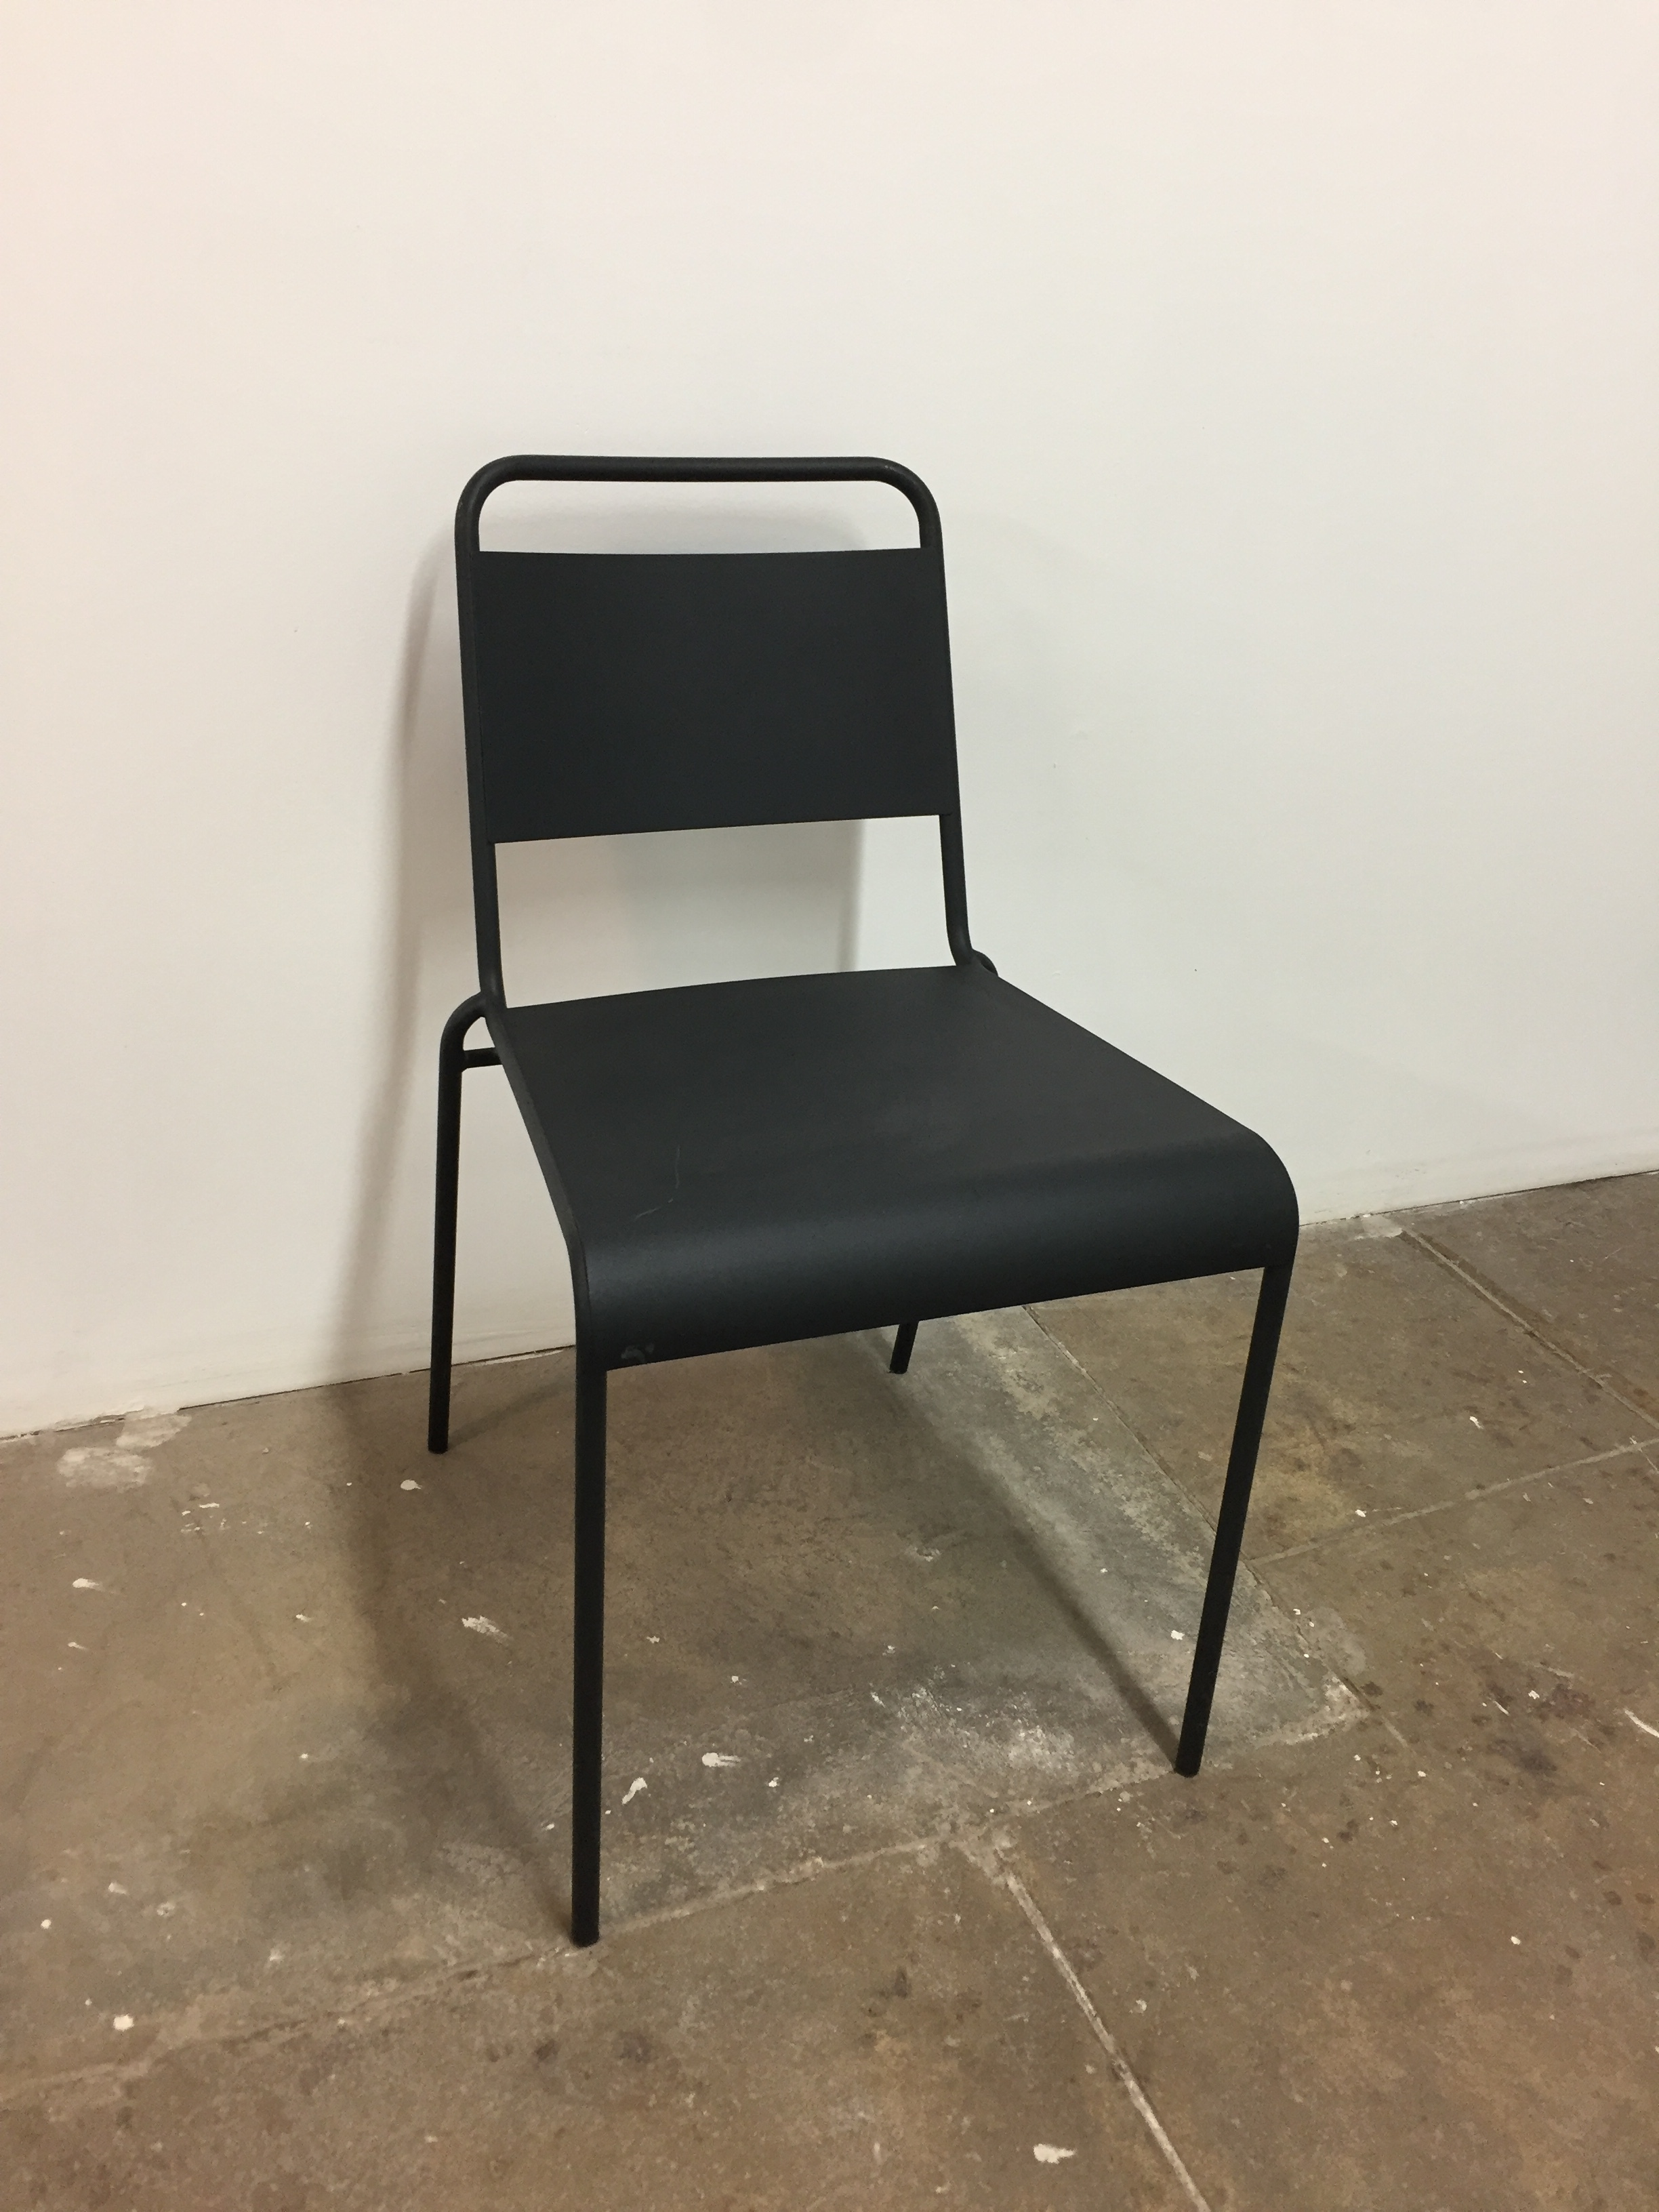 Black Metal Chairs QTY:16 Price: $6 ea